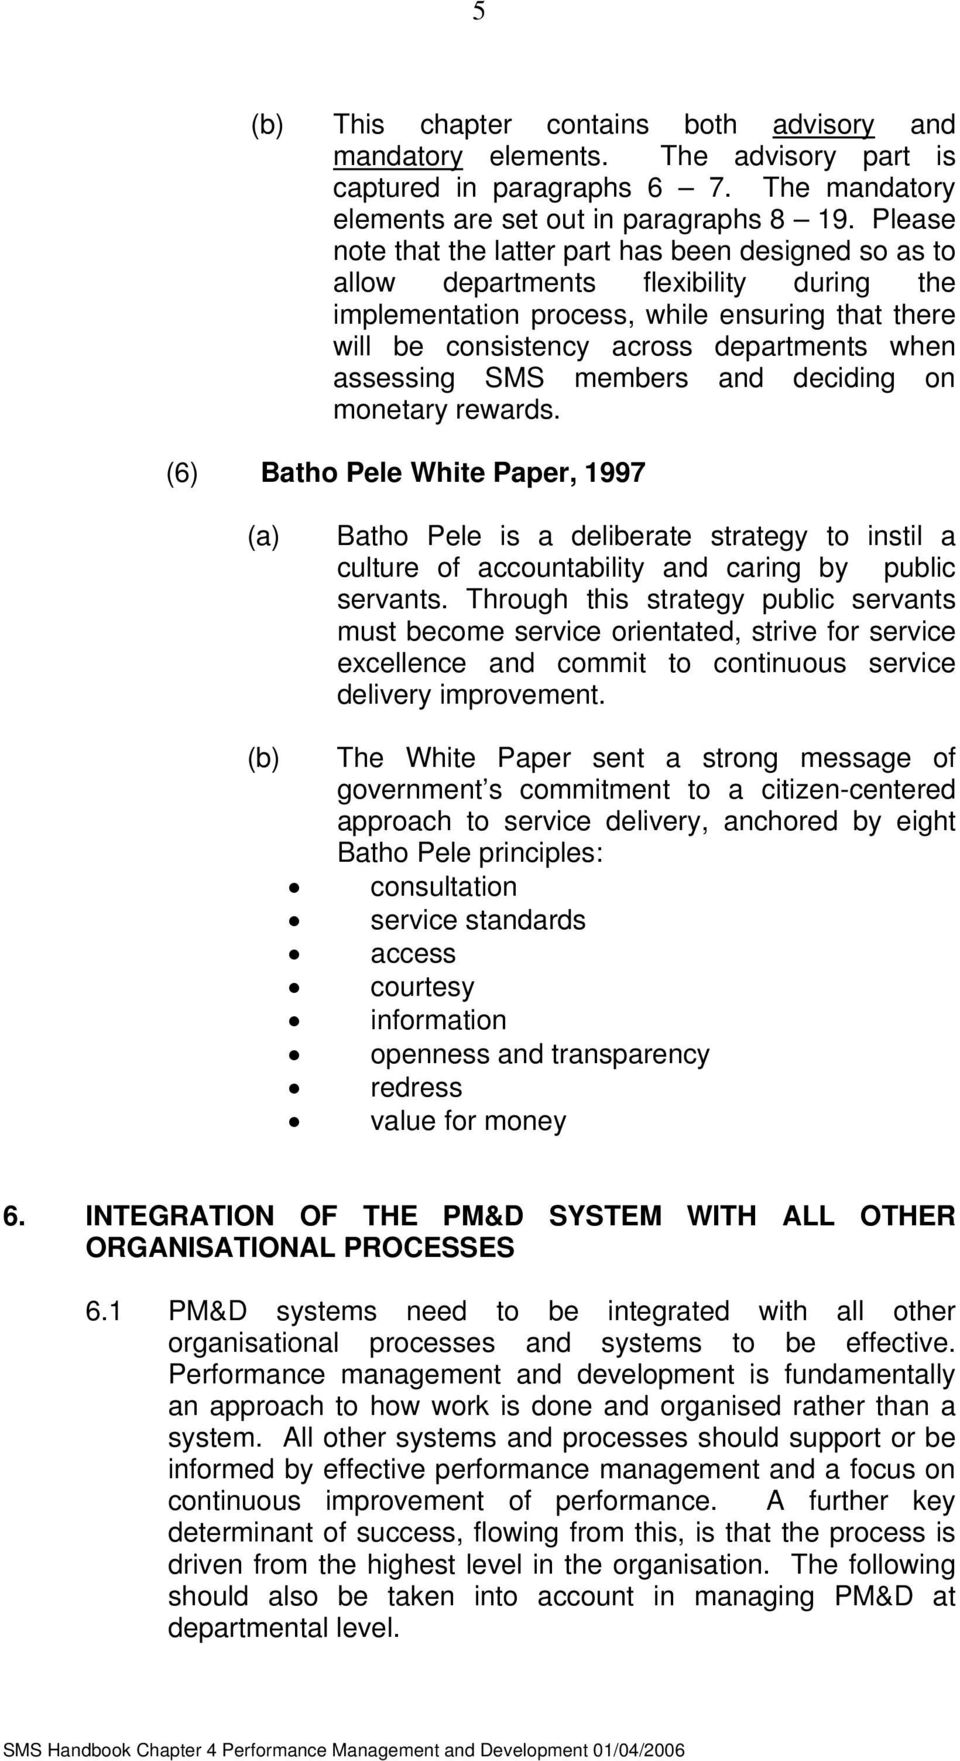 assessing SMS members and deciding on monetary rewards. (6) Batho Pele White Paper, 1997 Batho Pele is a deliberate strategy to instil a culture of accountability and caring by public servants.